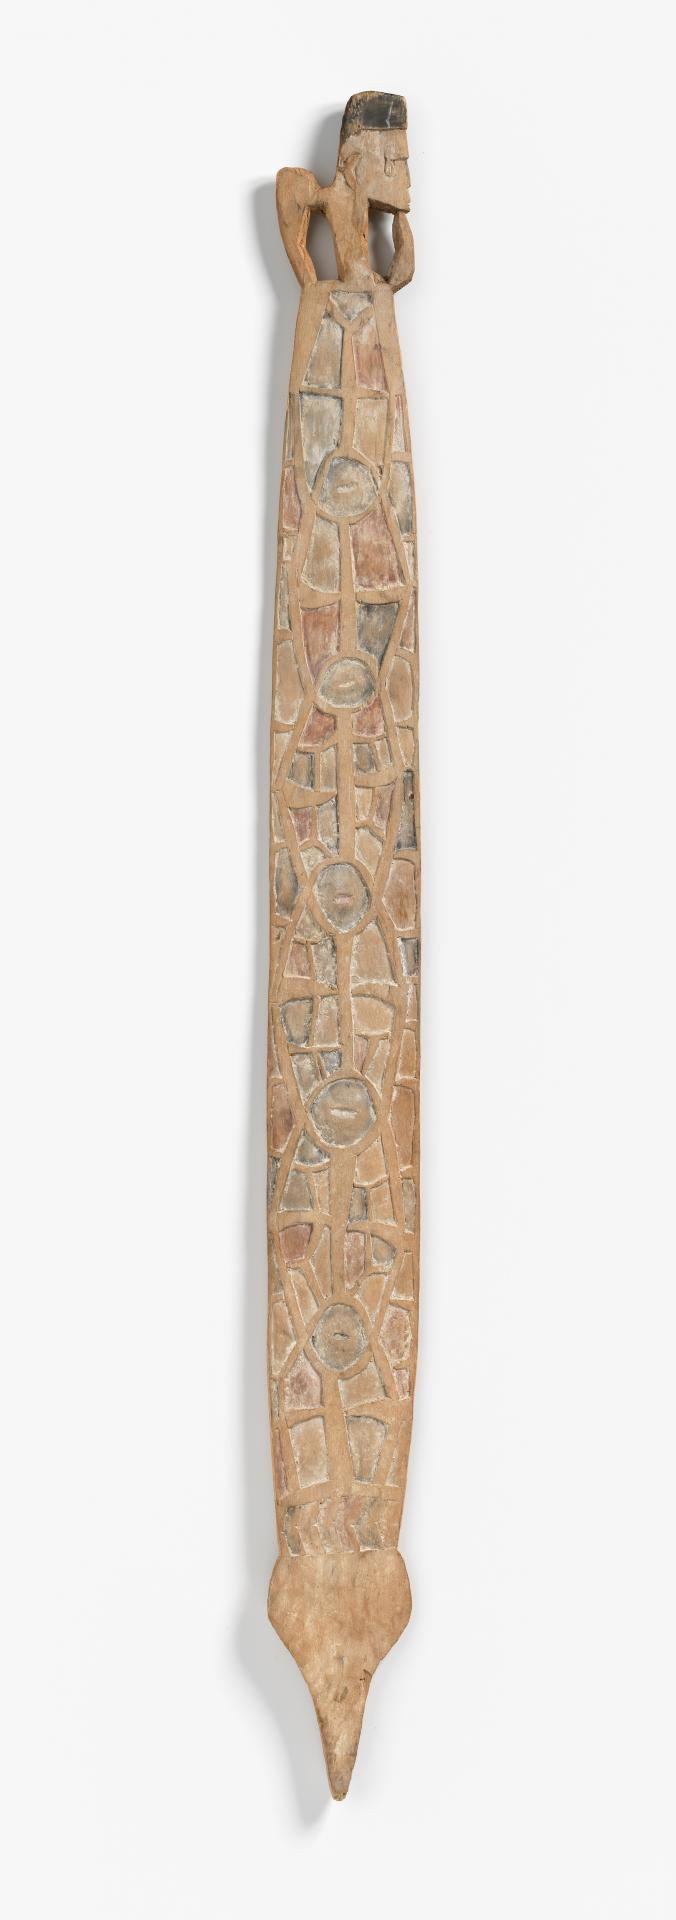 Yamate ceremonial board